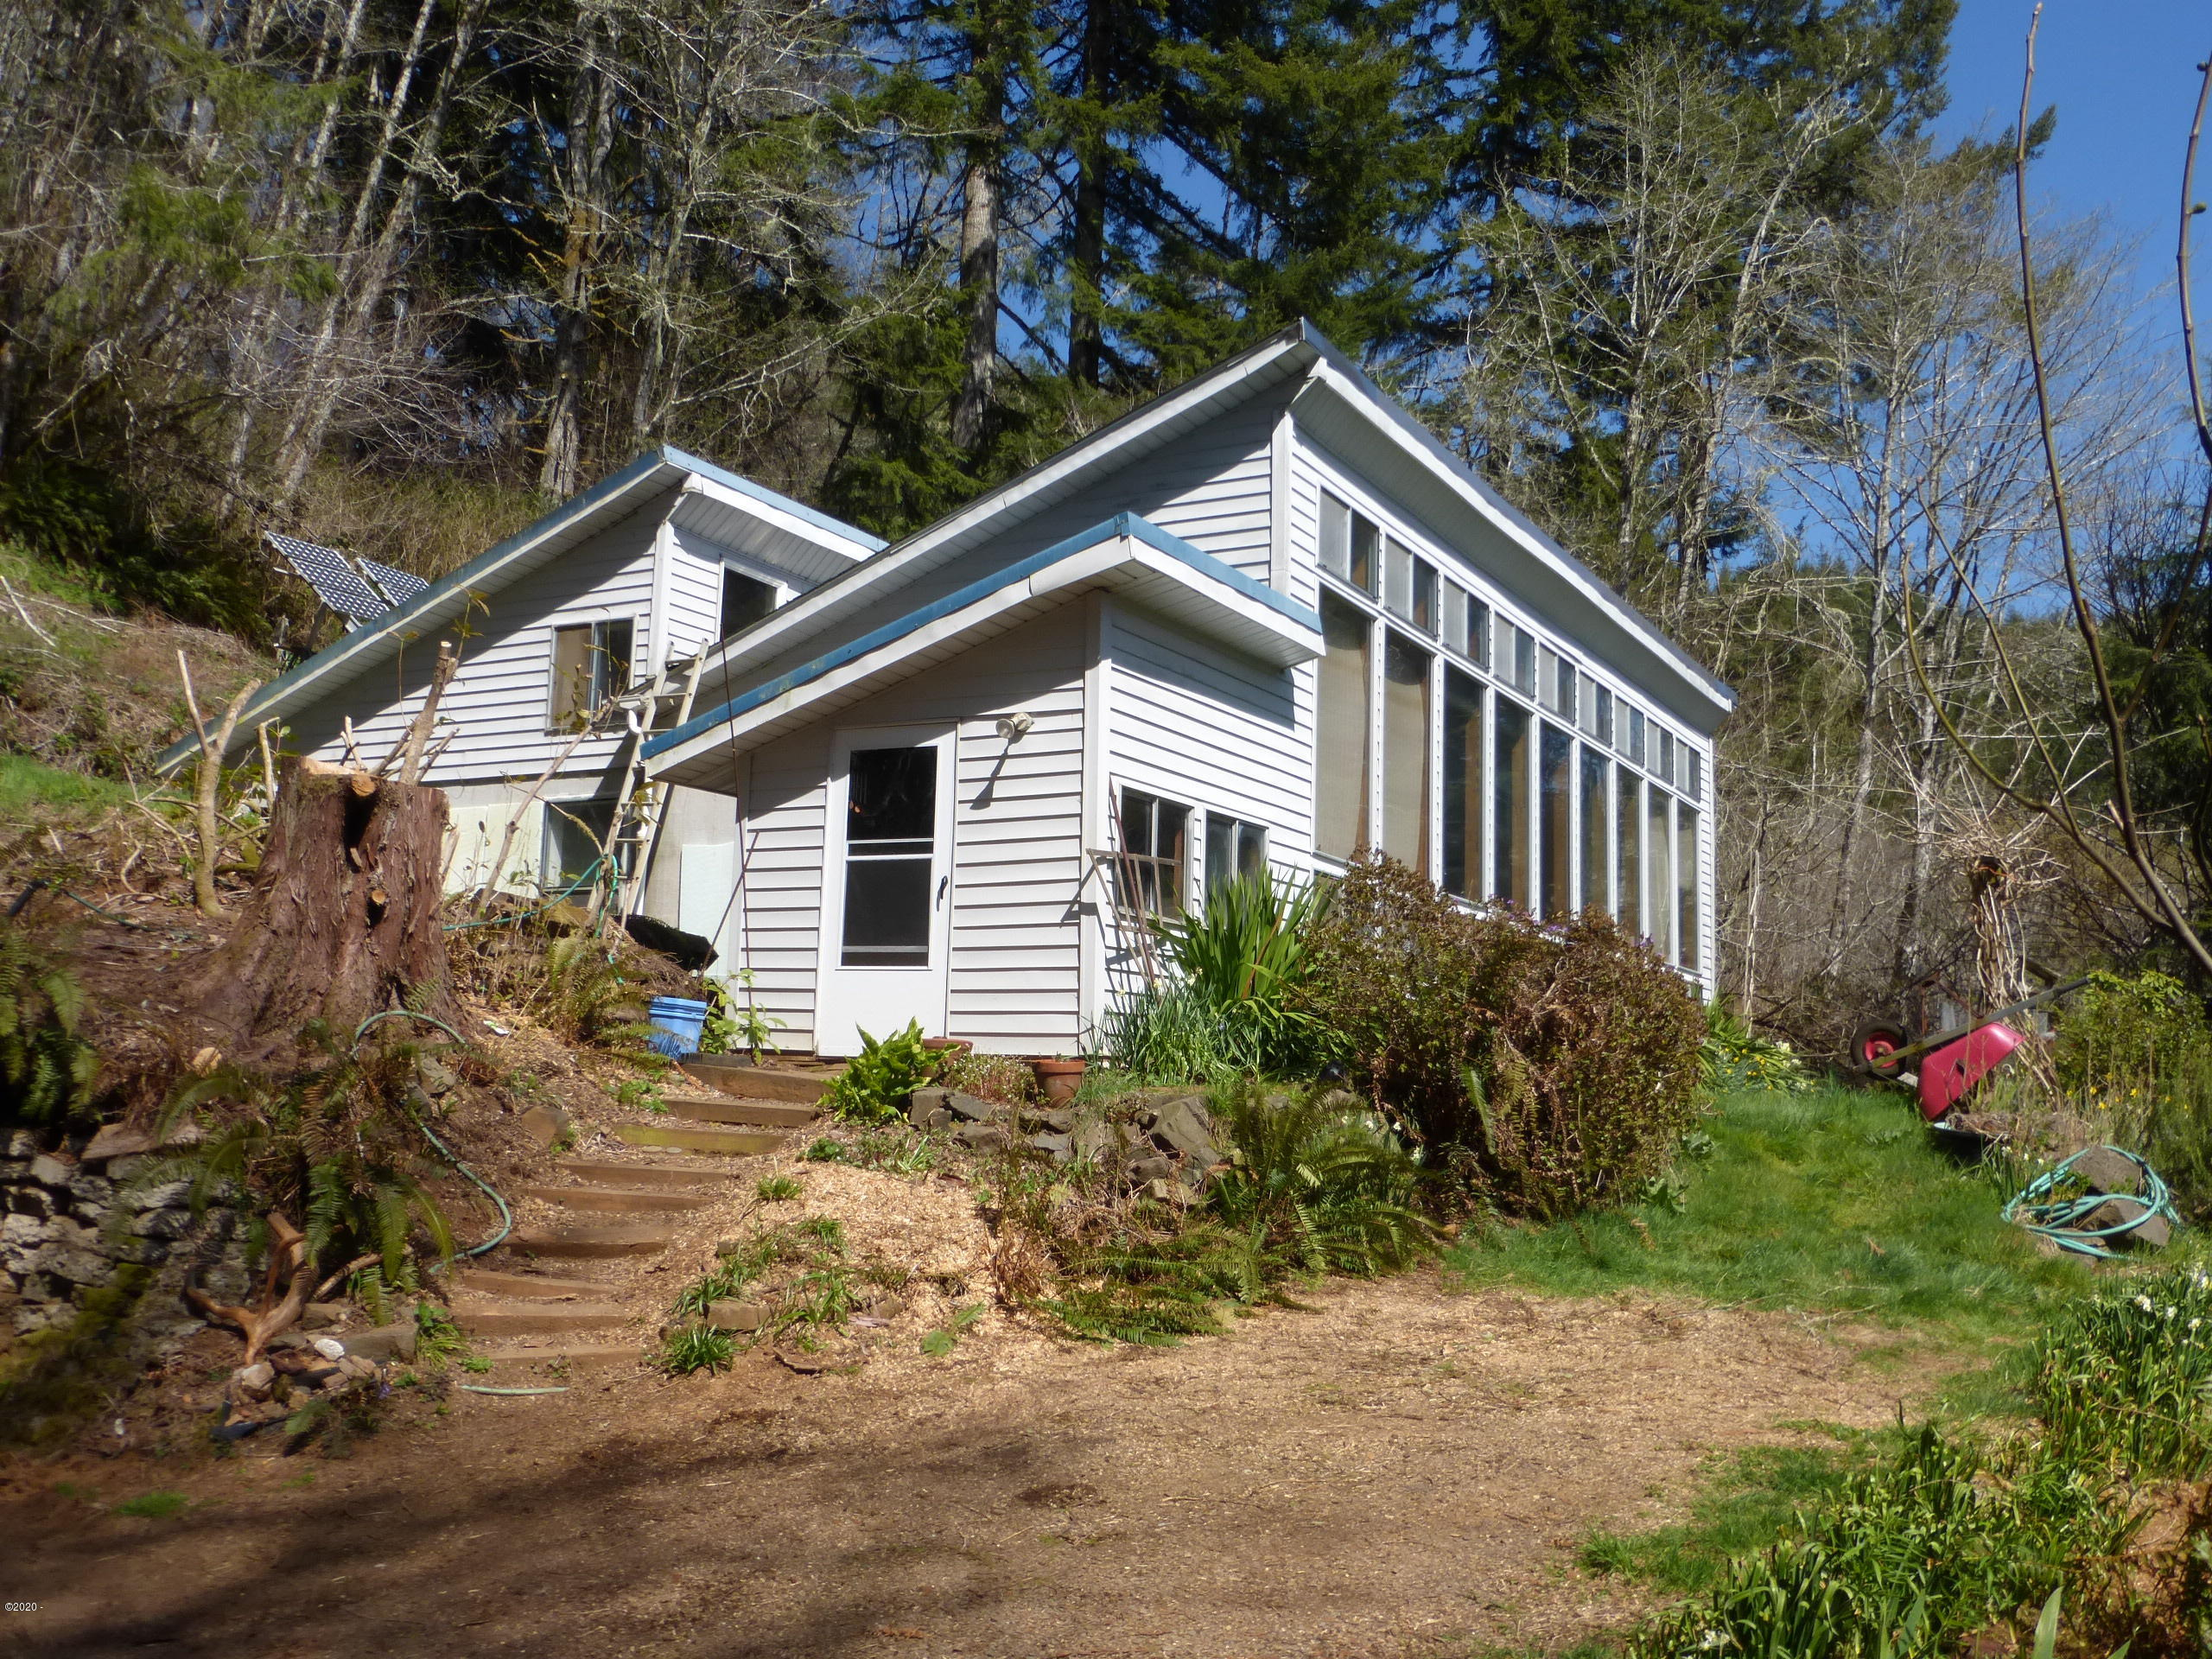 12909 Logsden Rd, Blodgett, OR 97326 - From the parking area